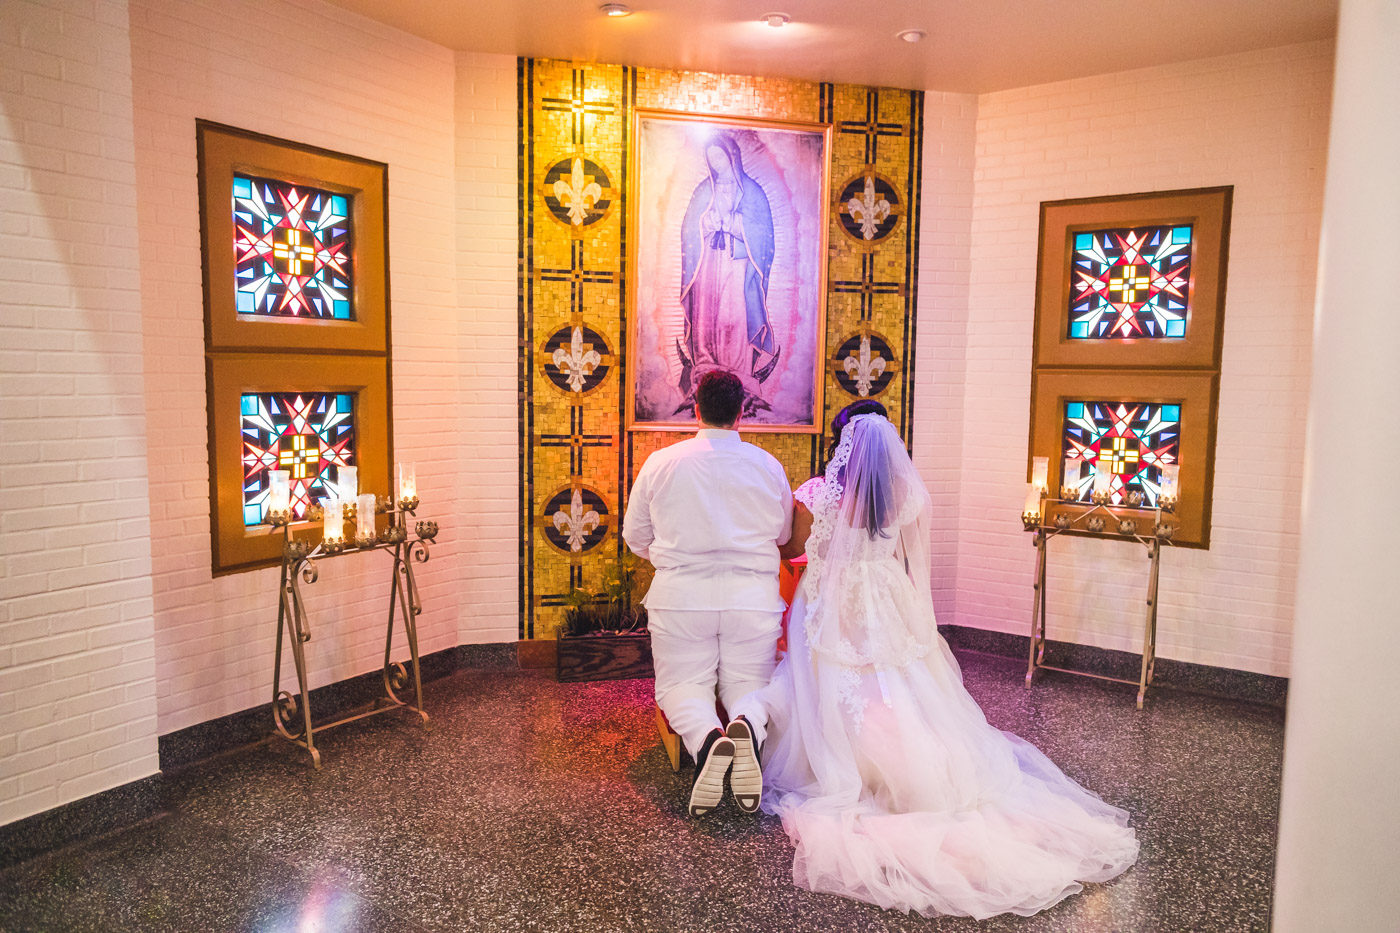 bride-and-groom-praying-together